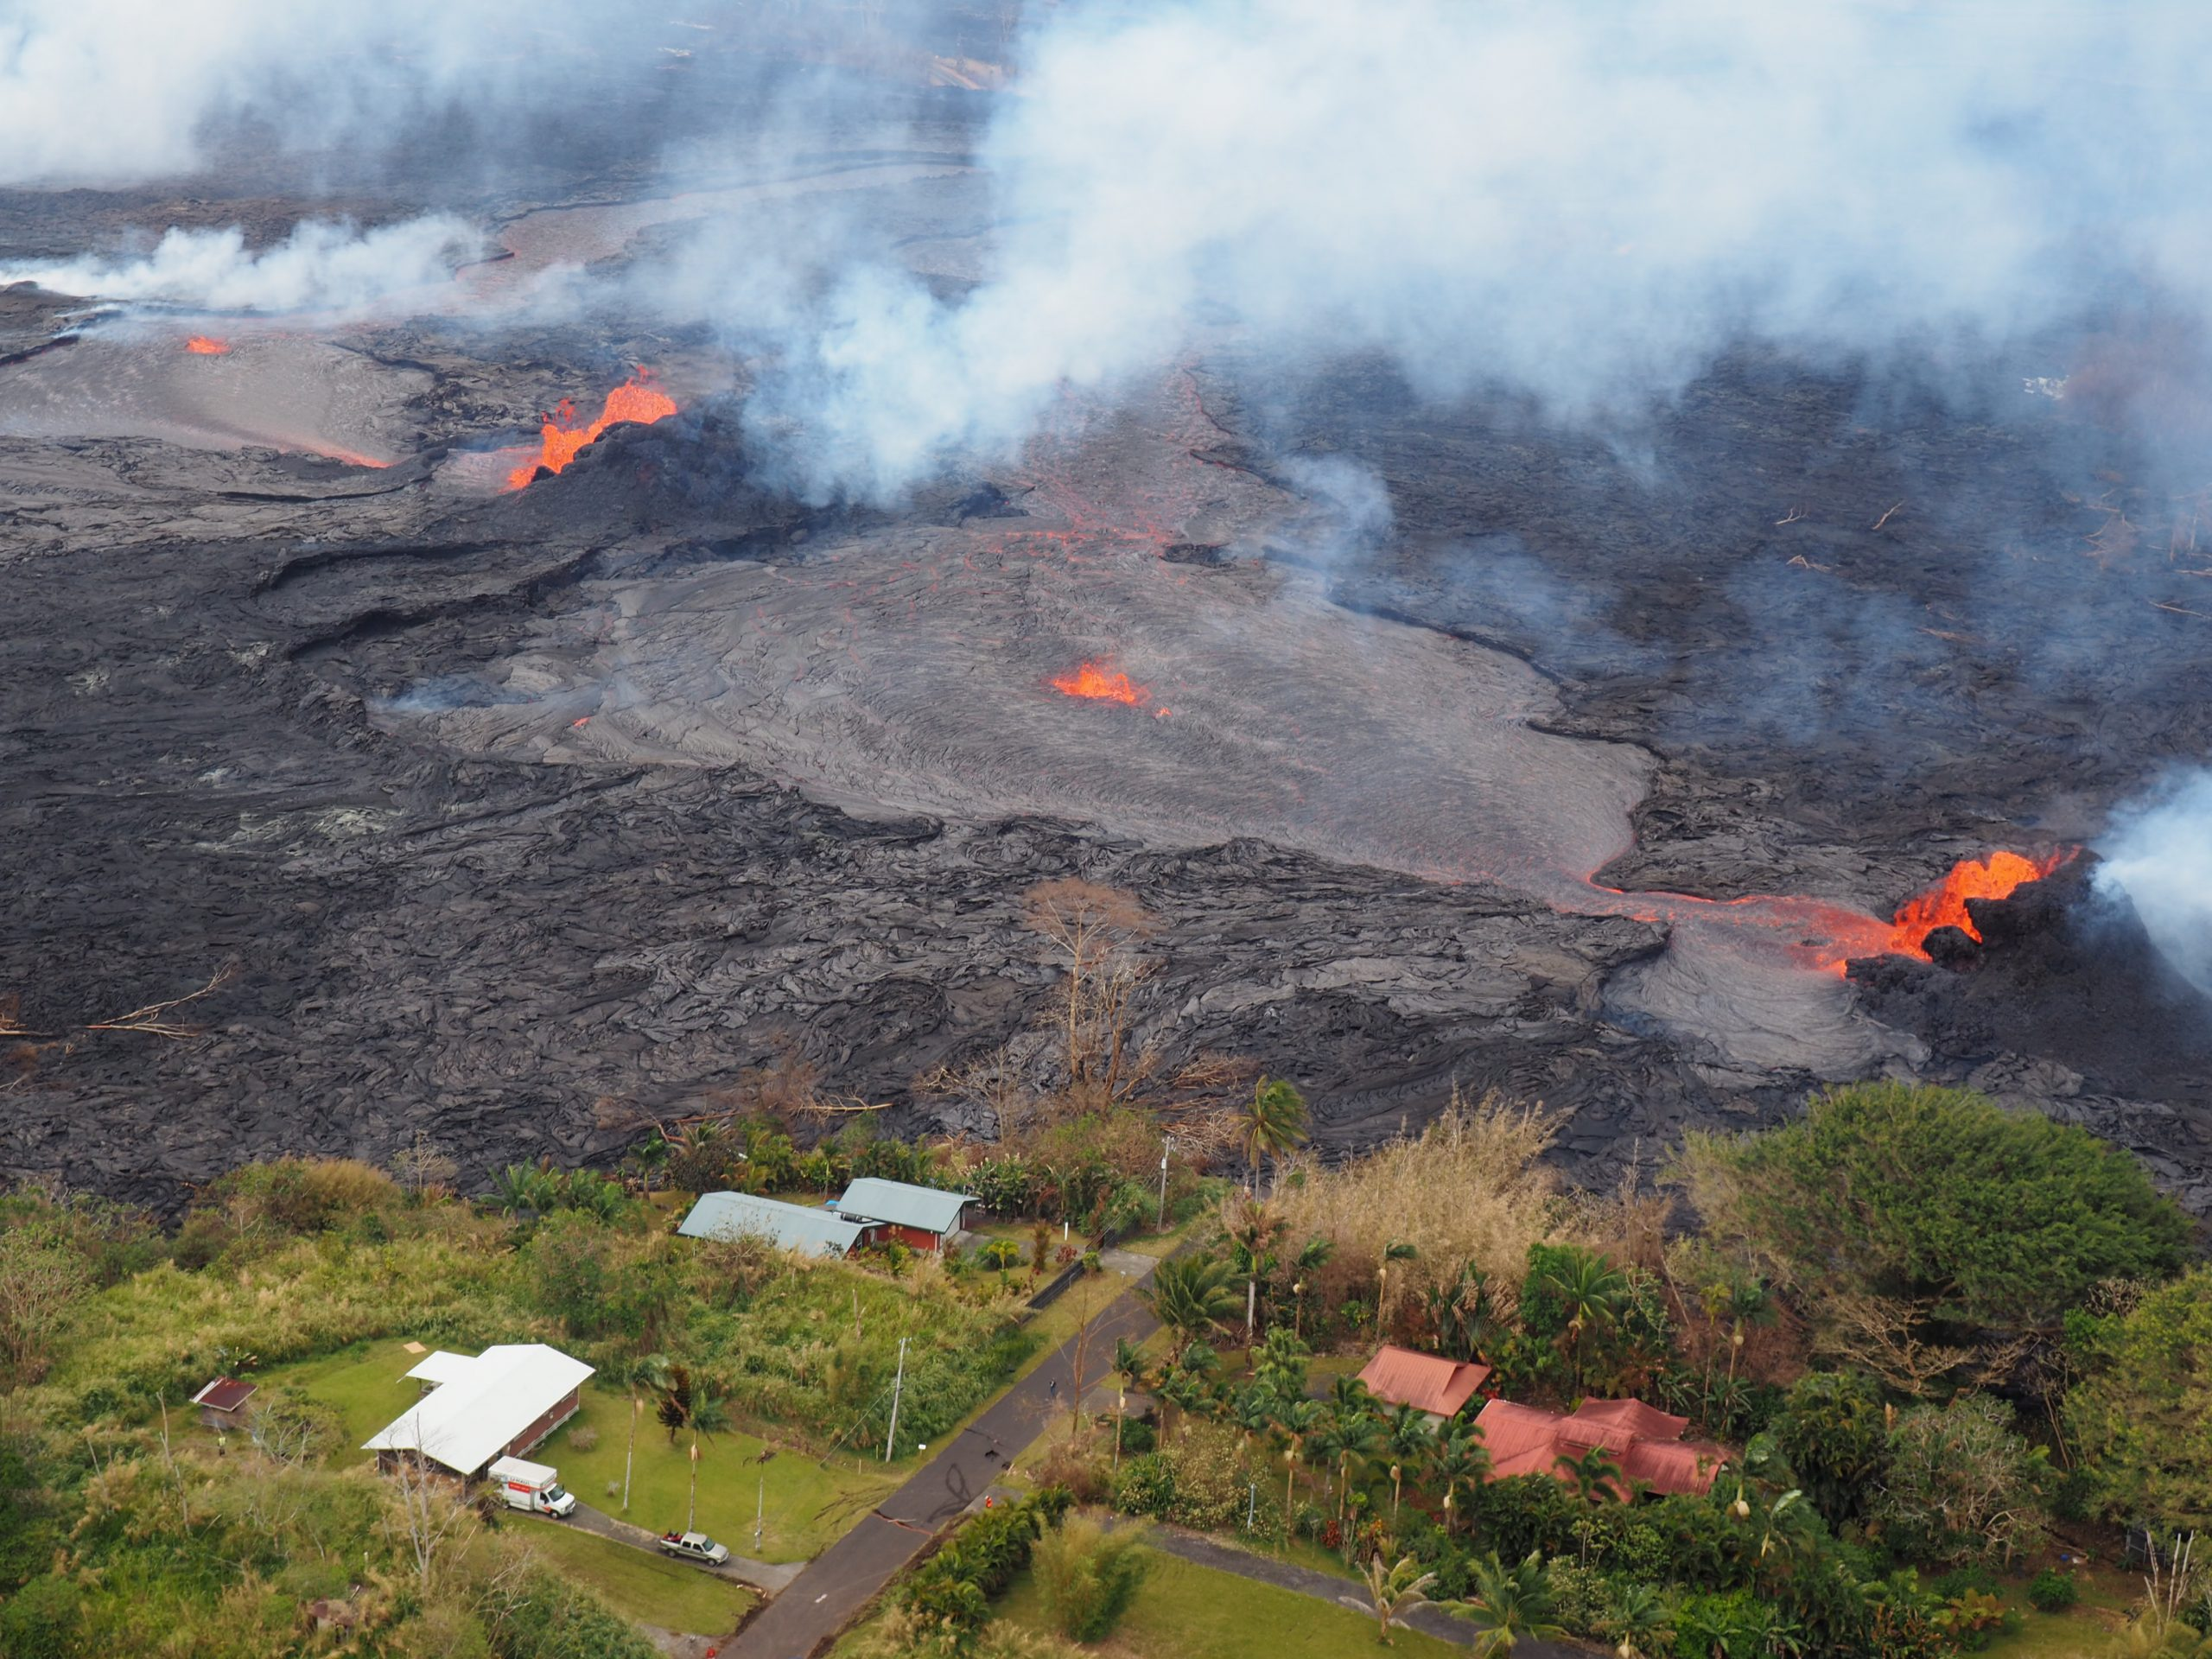 Lava flowed near and around homes during the 2018 Kilauea eruption